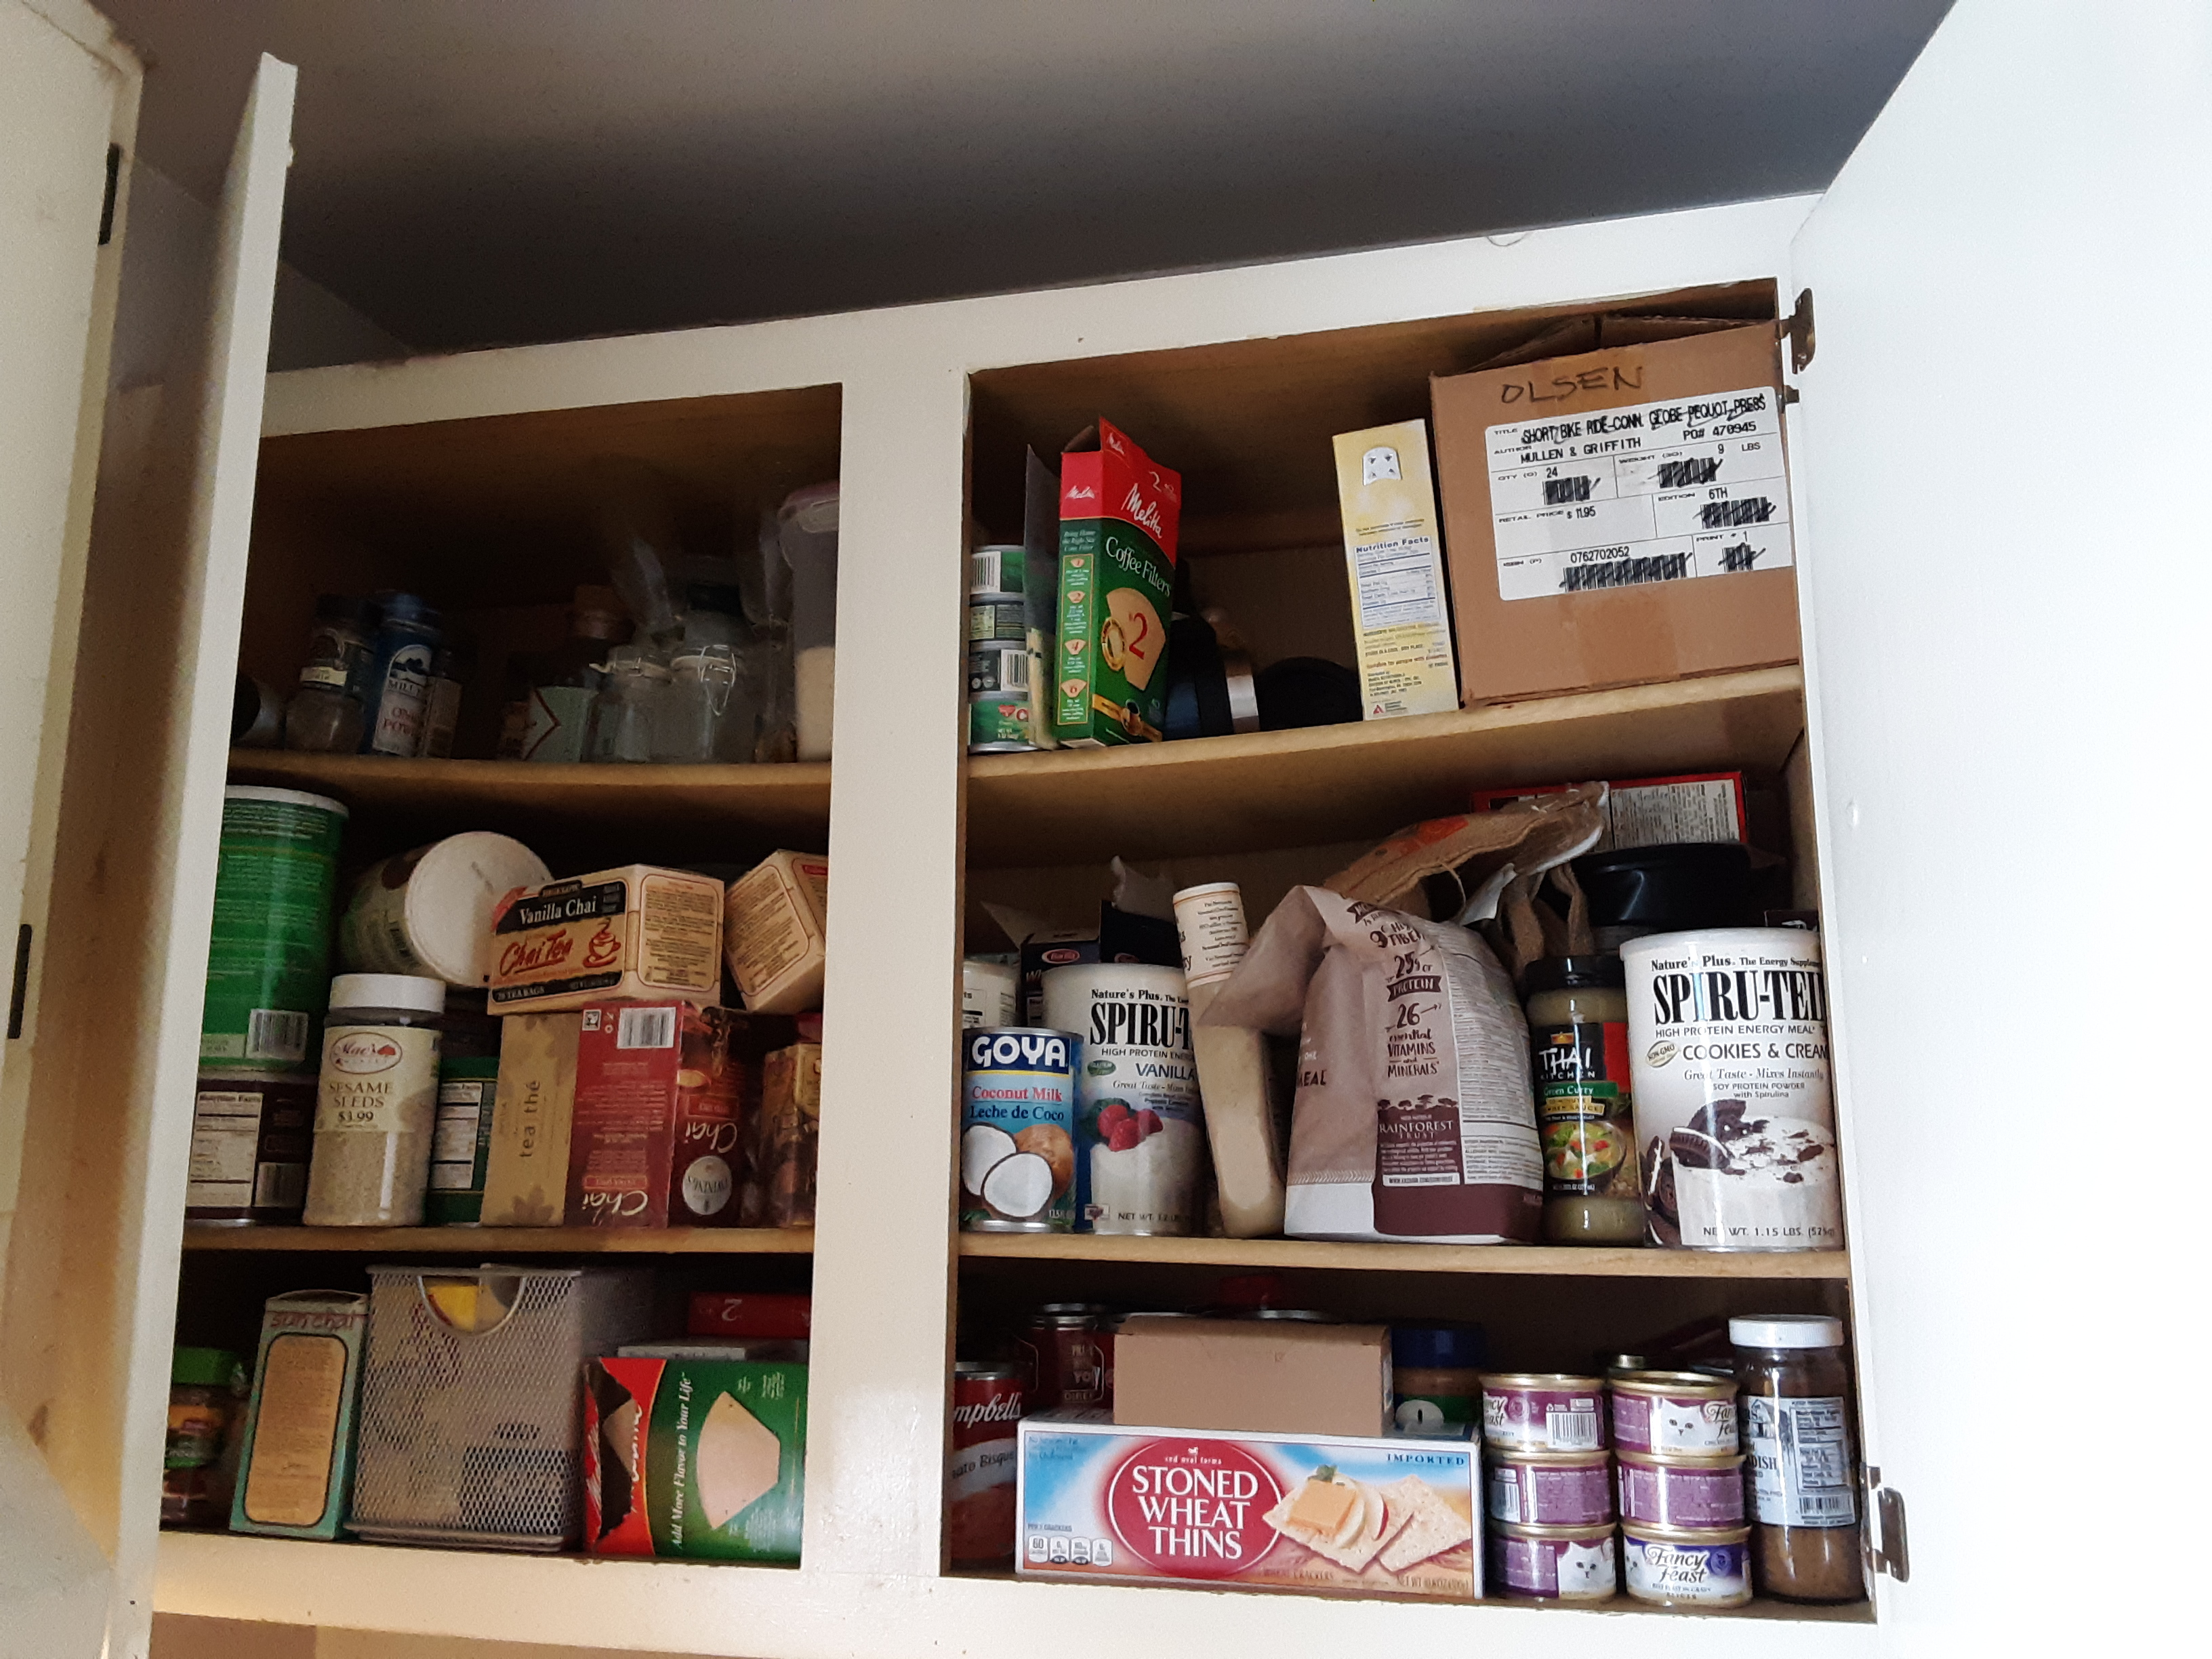 A very full kitchen cupboard before organizing it.